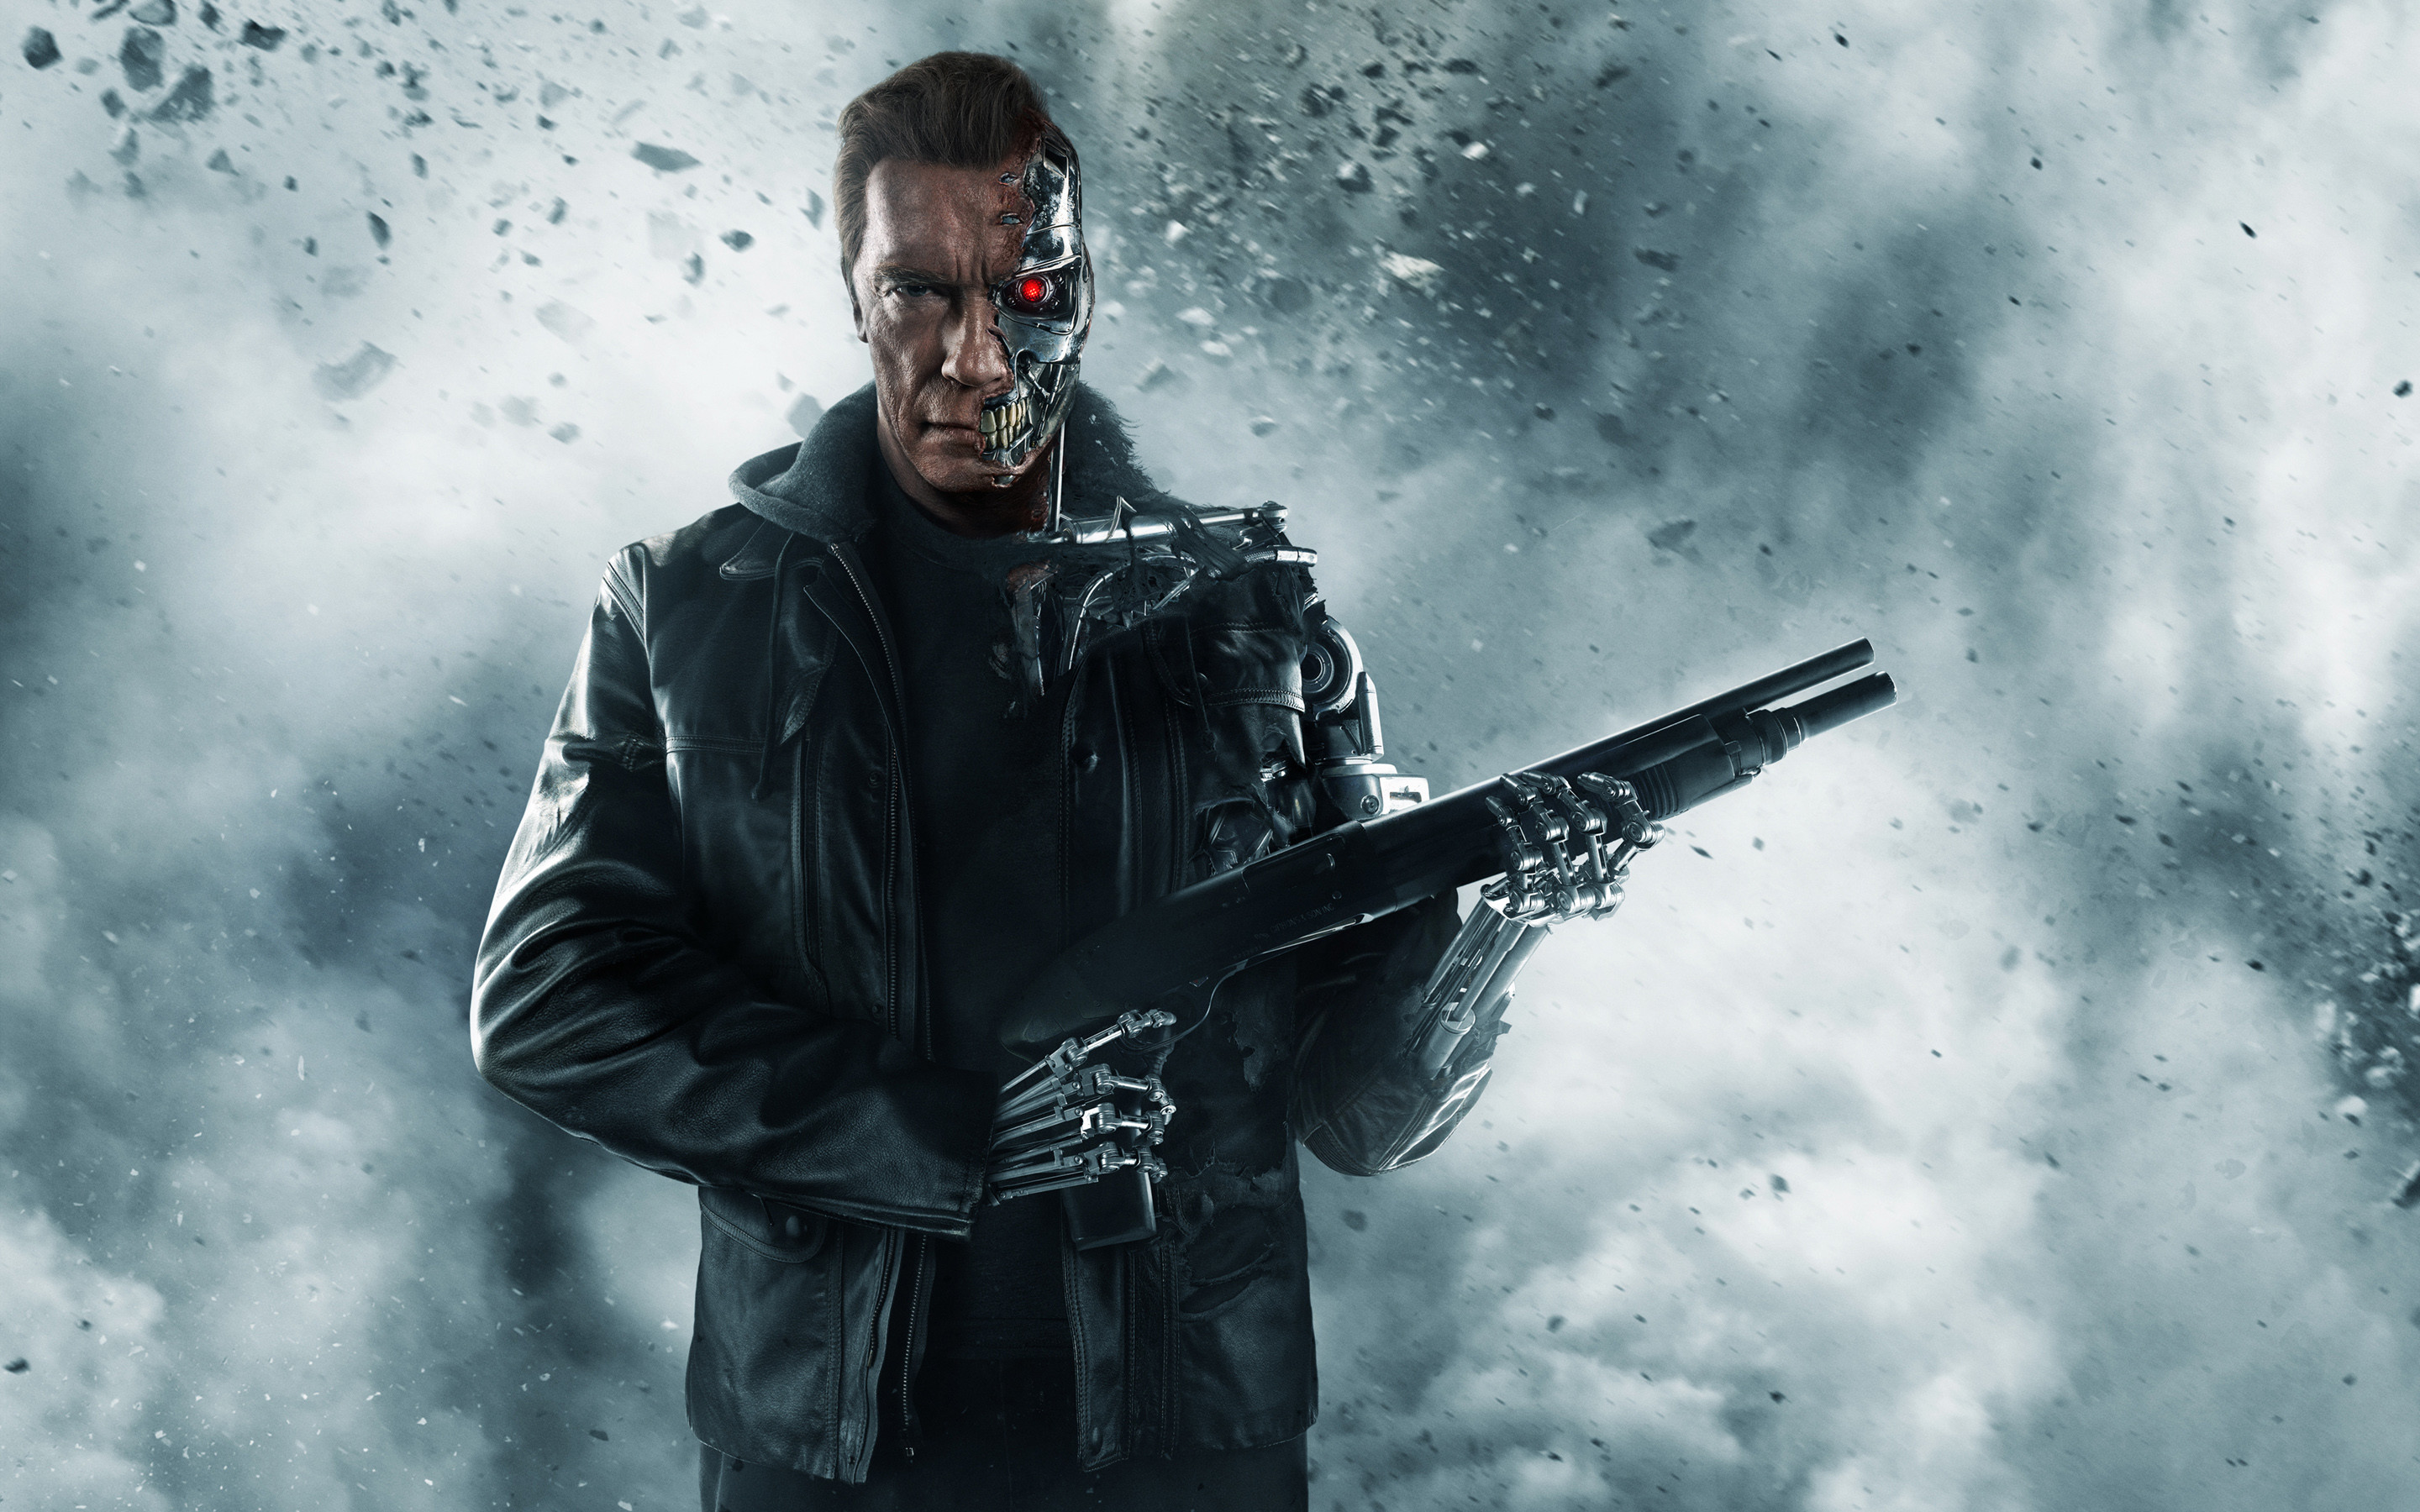 Res: 2880x1800, Terminator Wallpaper Wide For Desktop Wallpaper 2880 x 1800 px 1.52 MB  poster epic teaser t